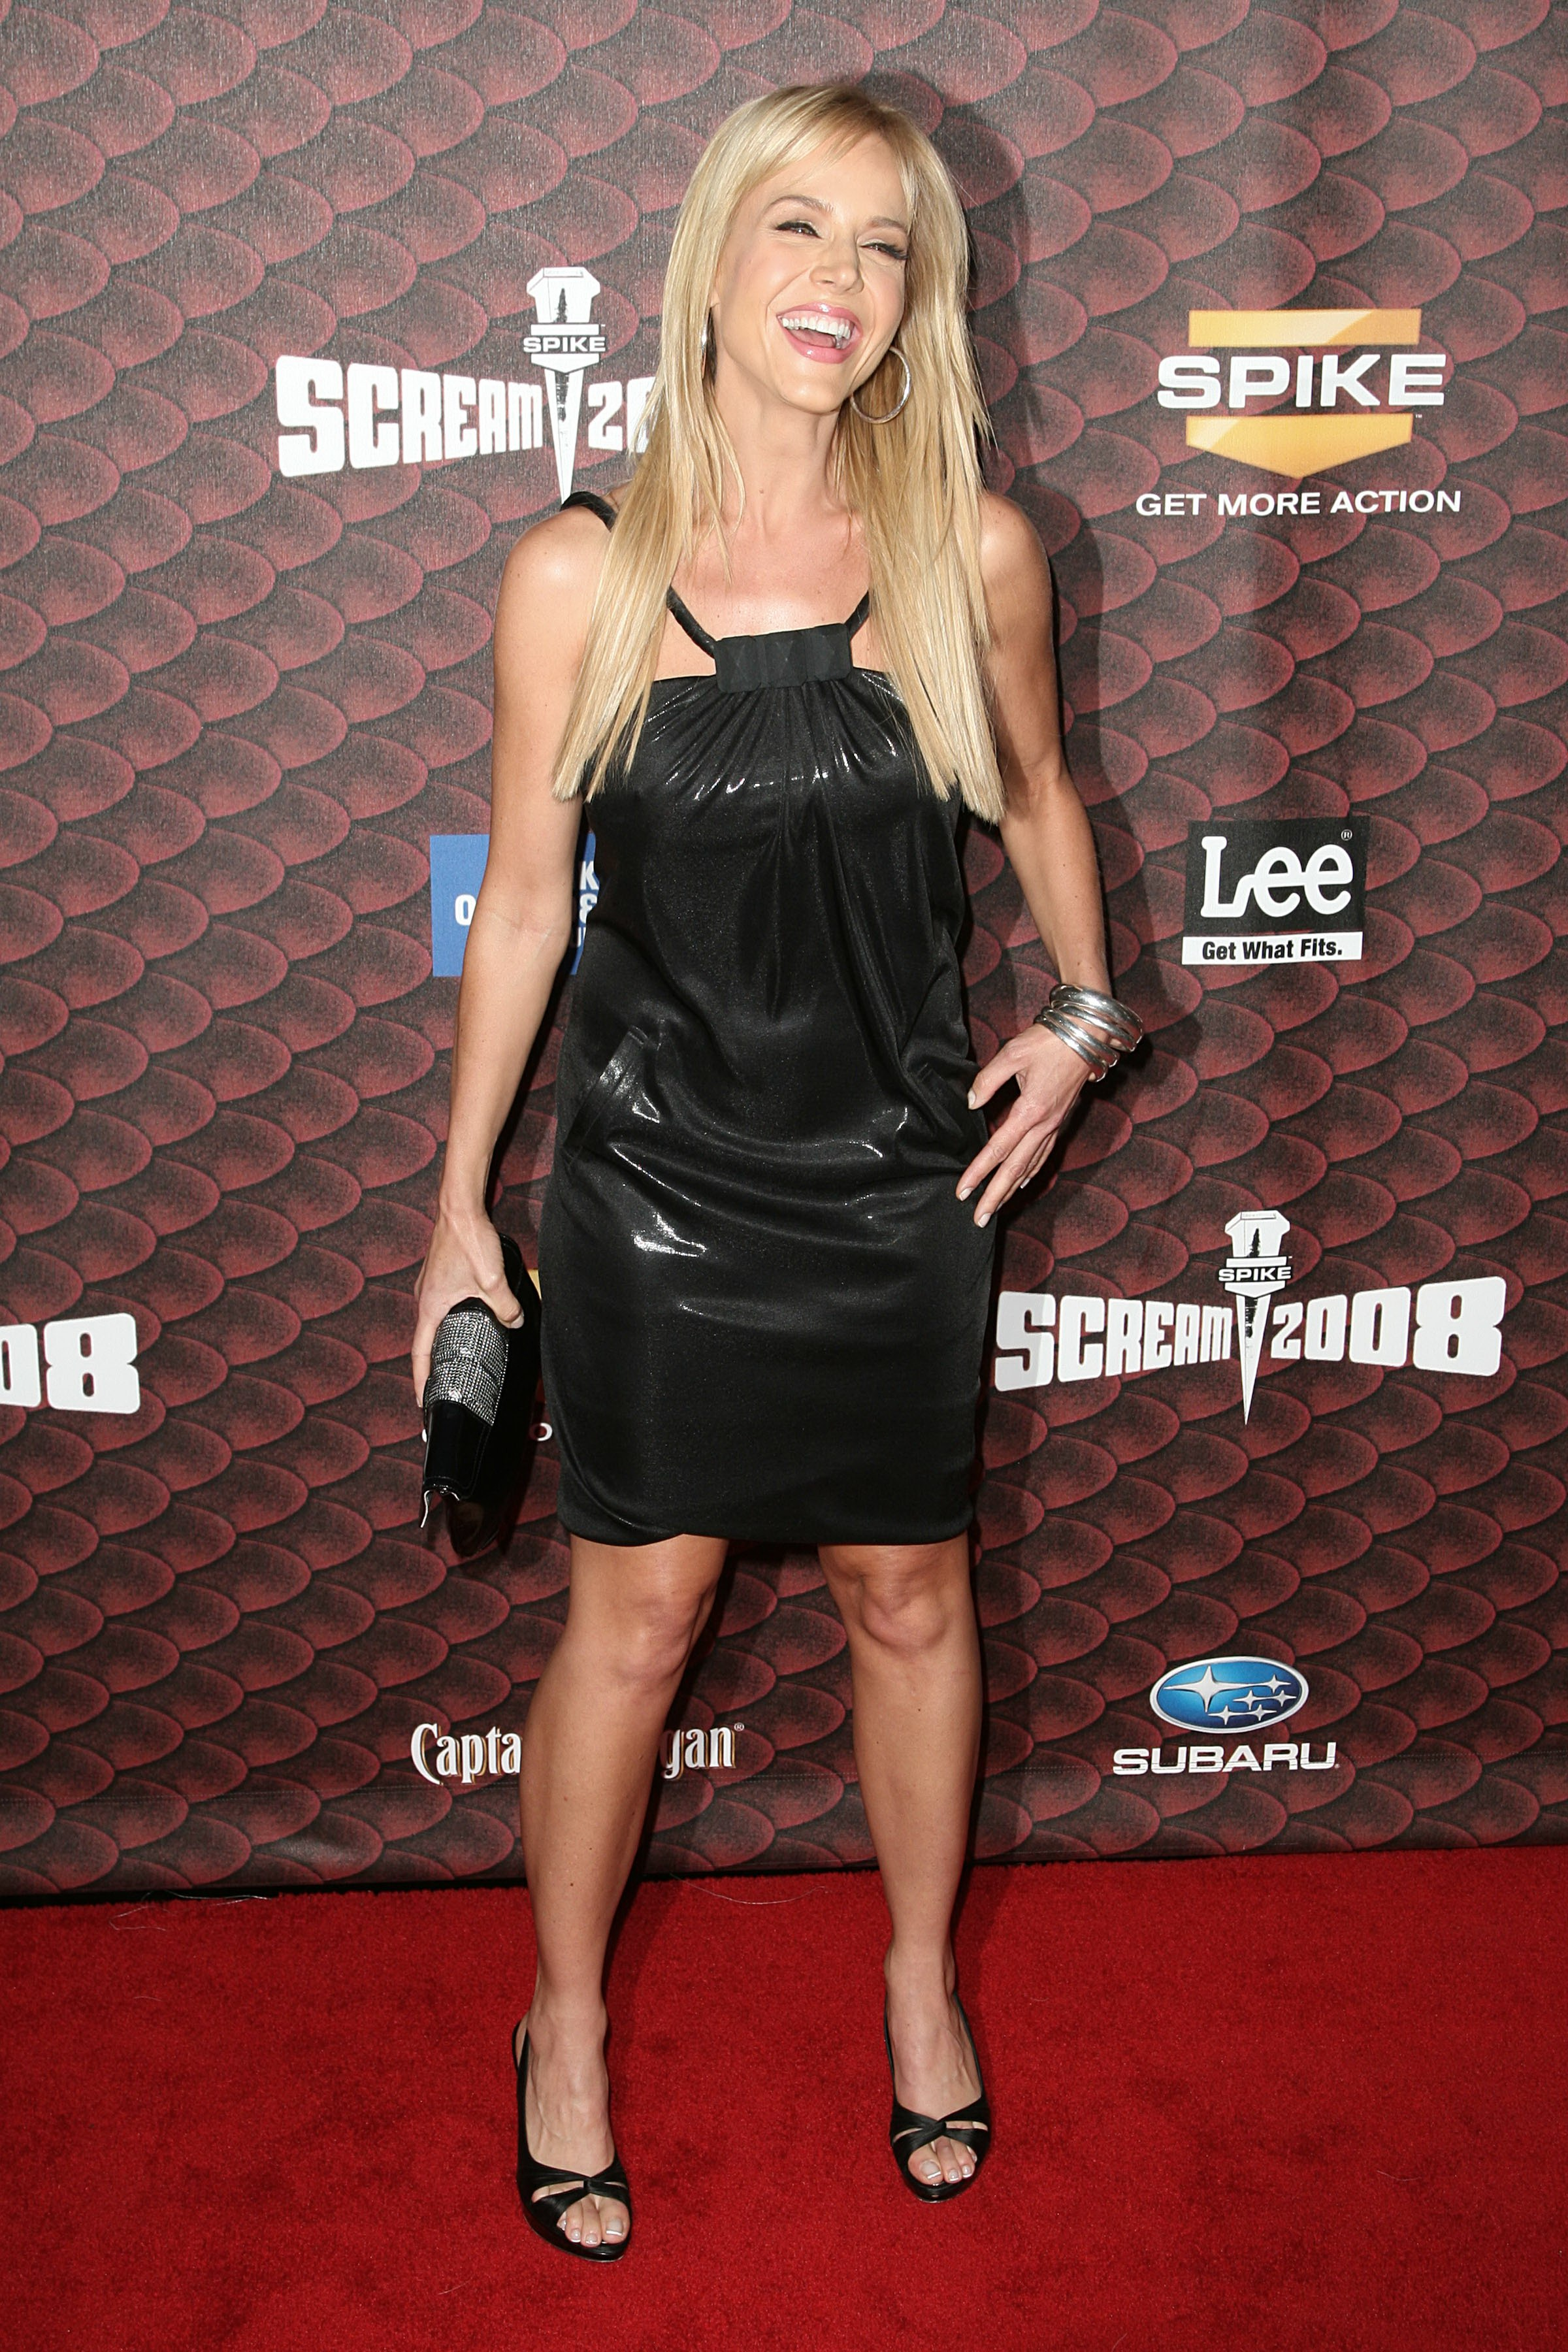 06055_julie_benz_2008spikeTV_WB_014_122_945lo.jpg